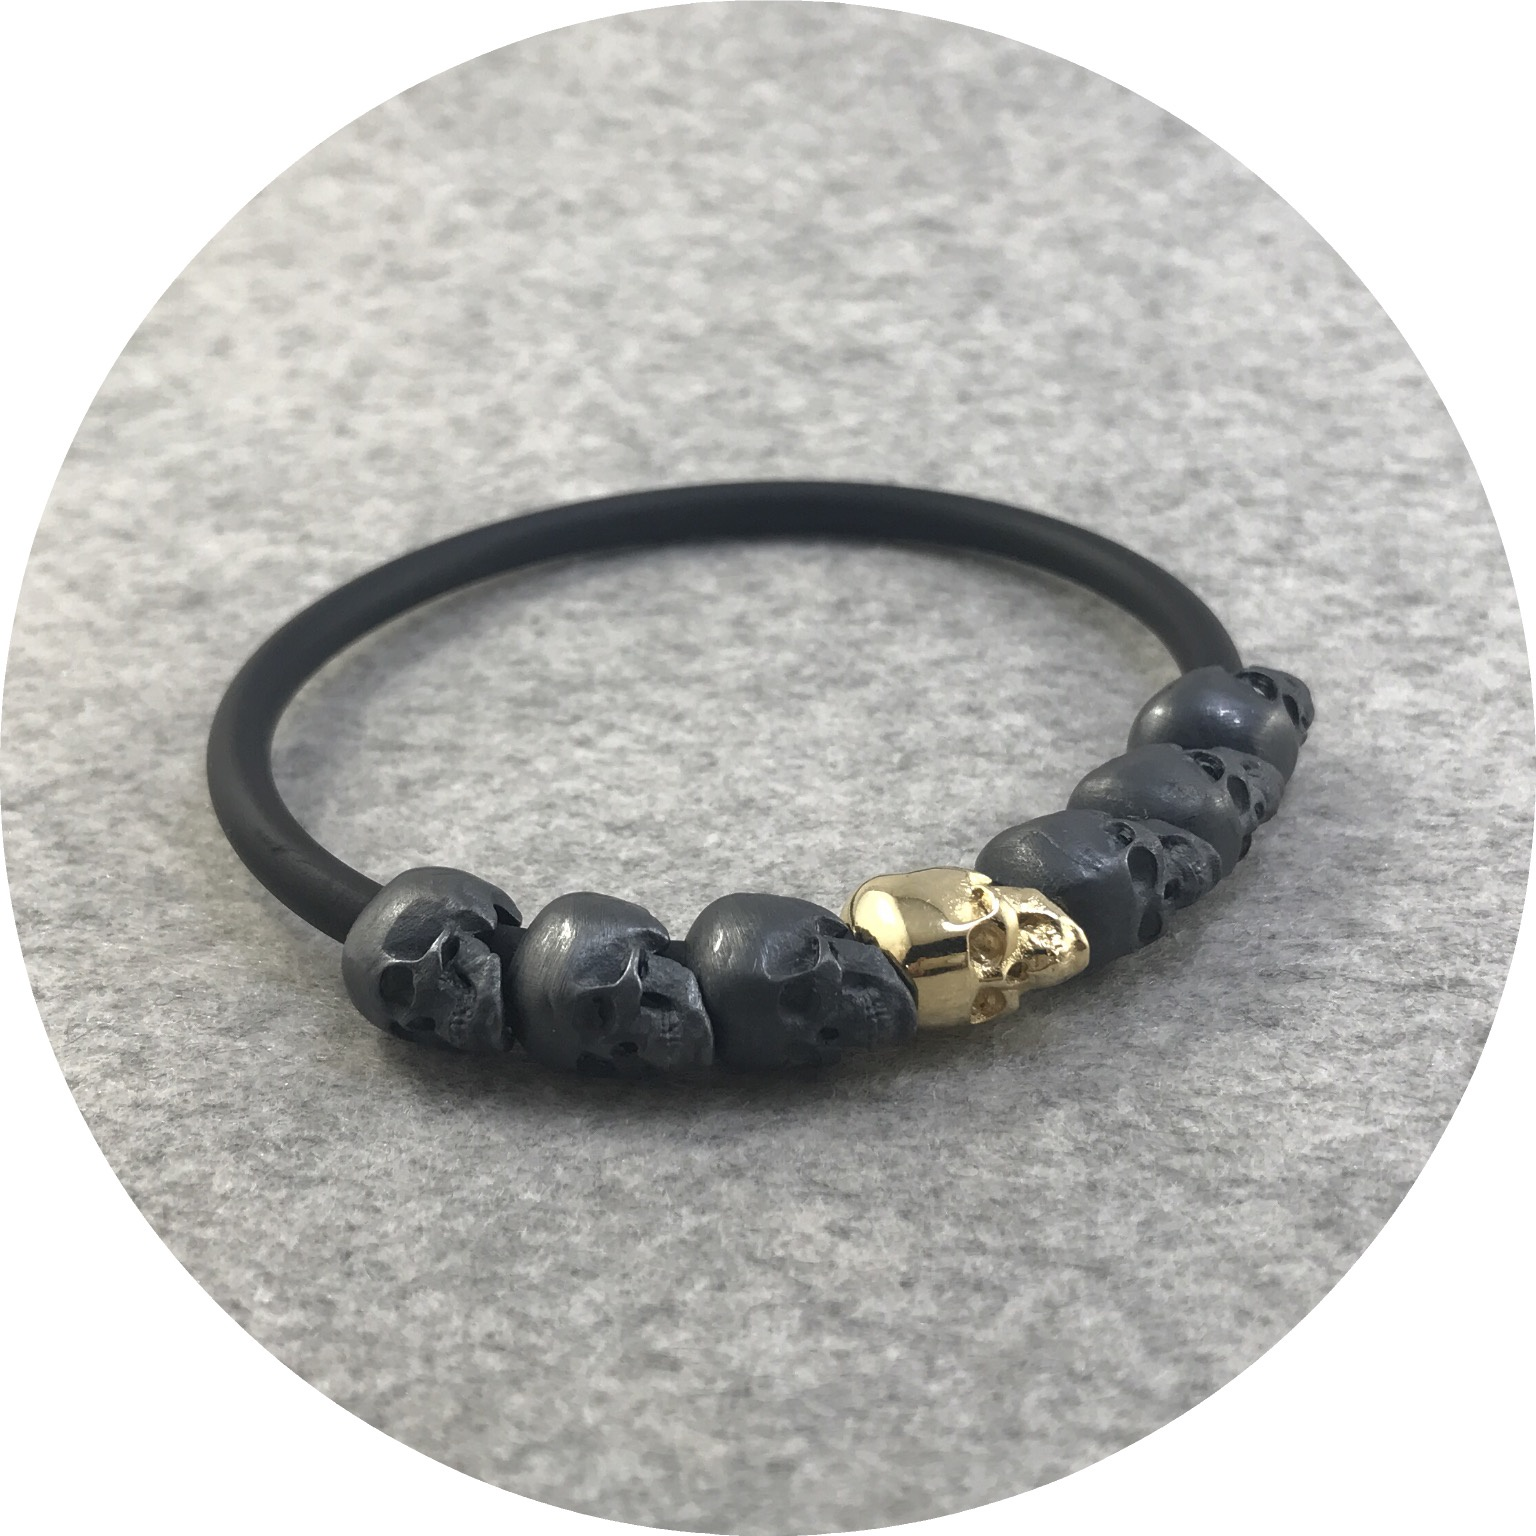 Fin Mahon - Seven Skull Bracelet in 9ct Yellow Gold, Oxidised Sterling Silver and Neoprene